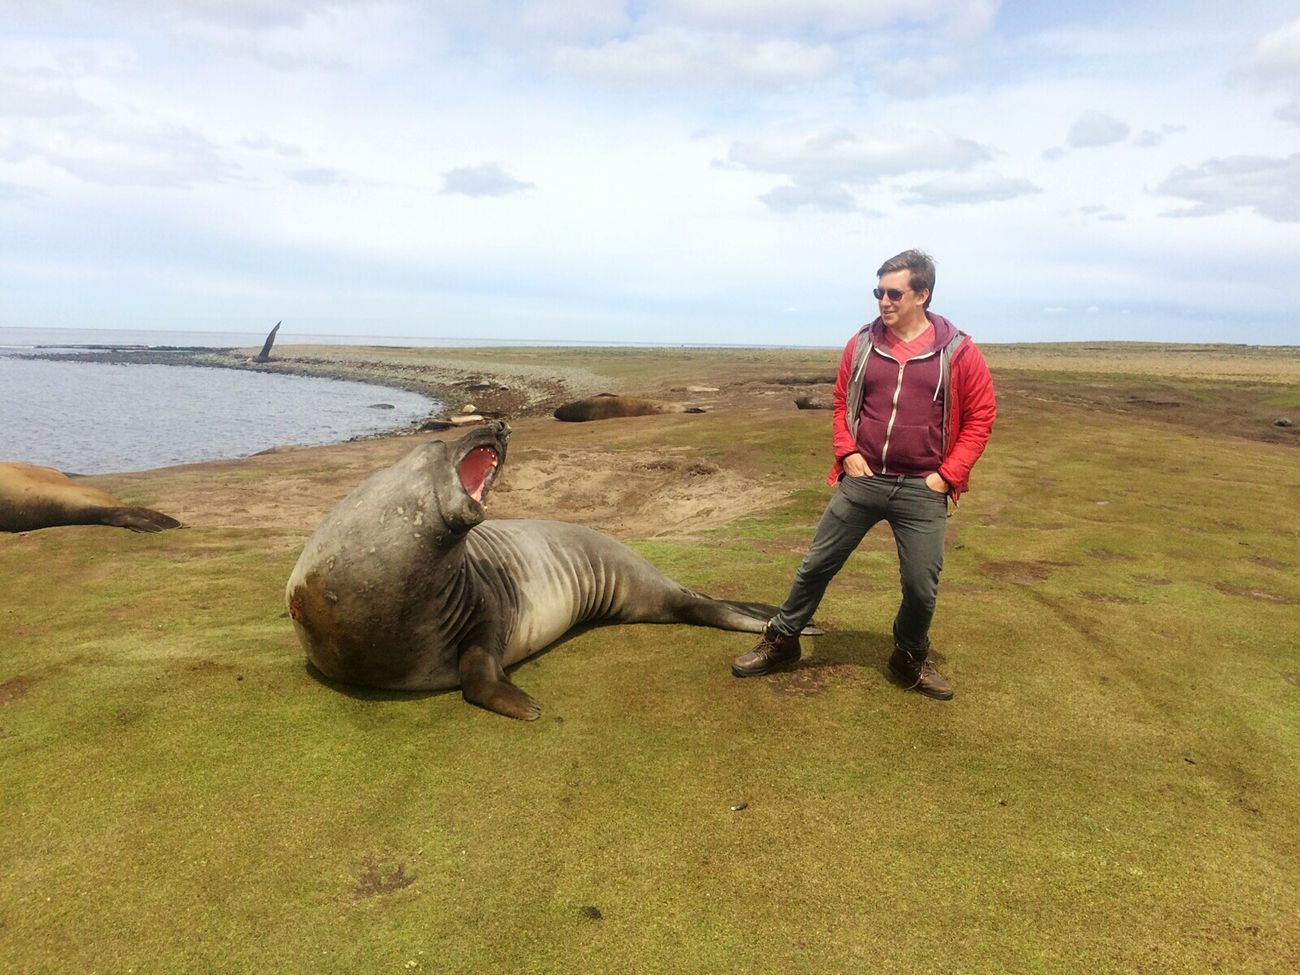 Elephant Seal in the Falkland Islands.